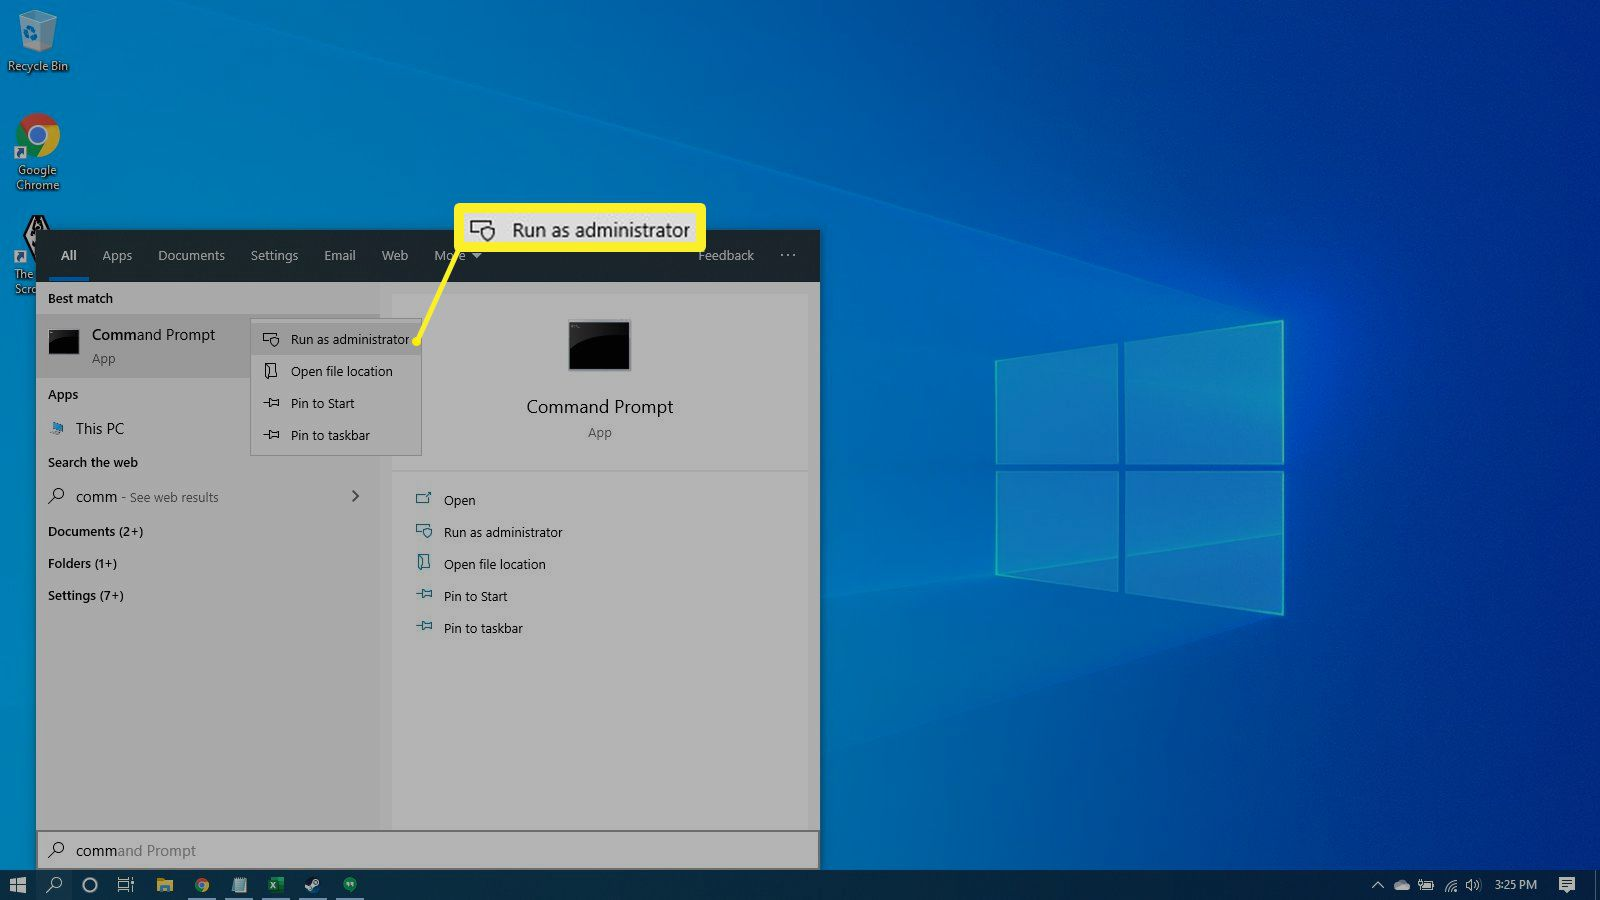 Selecting to run the Command Prompt as an admin